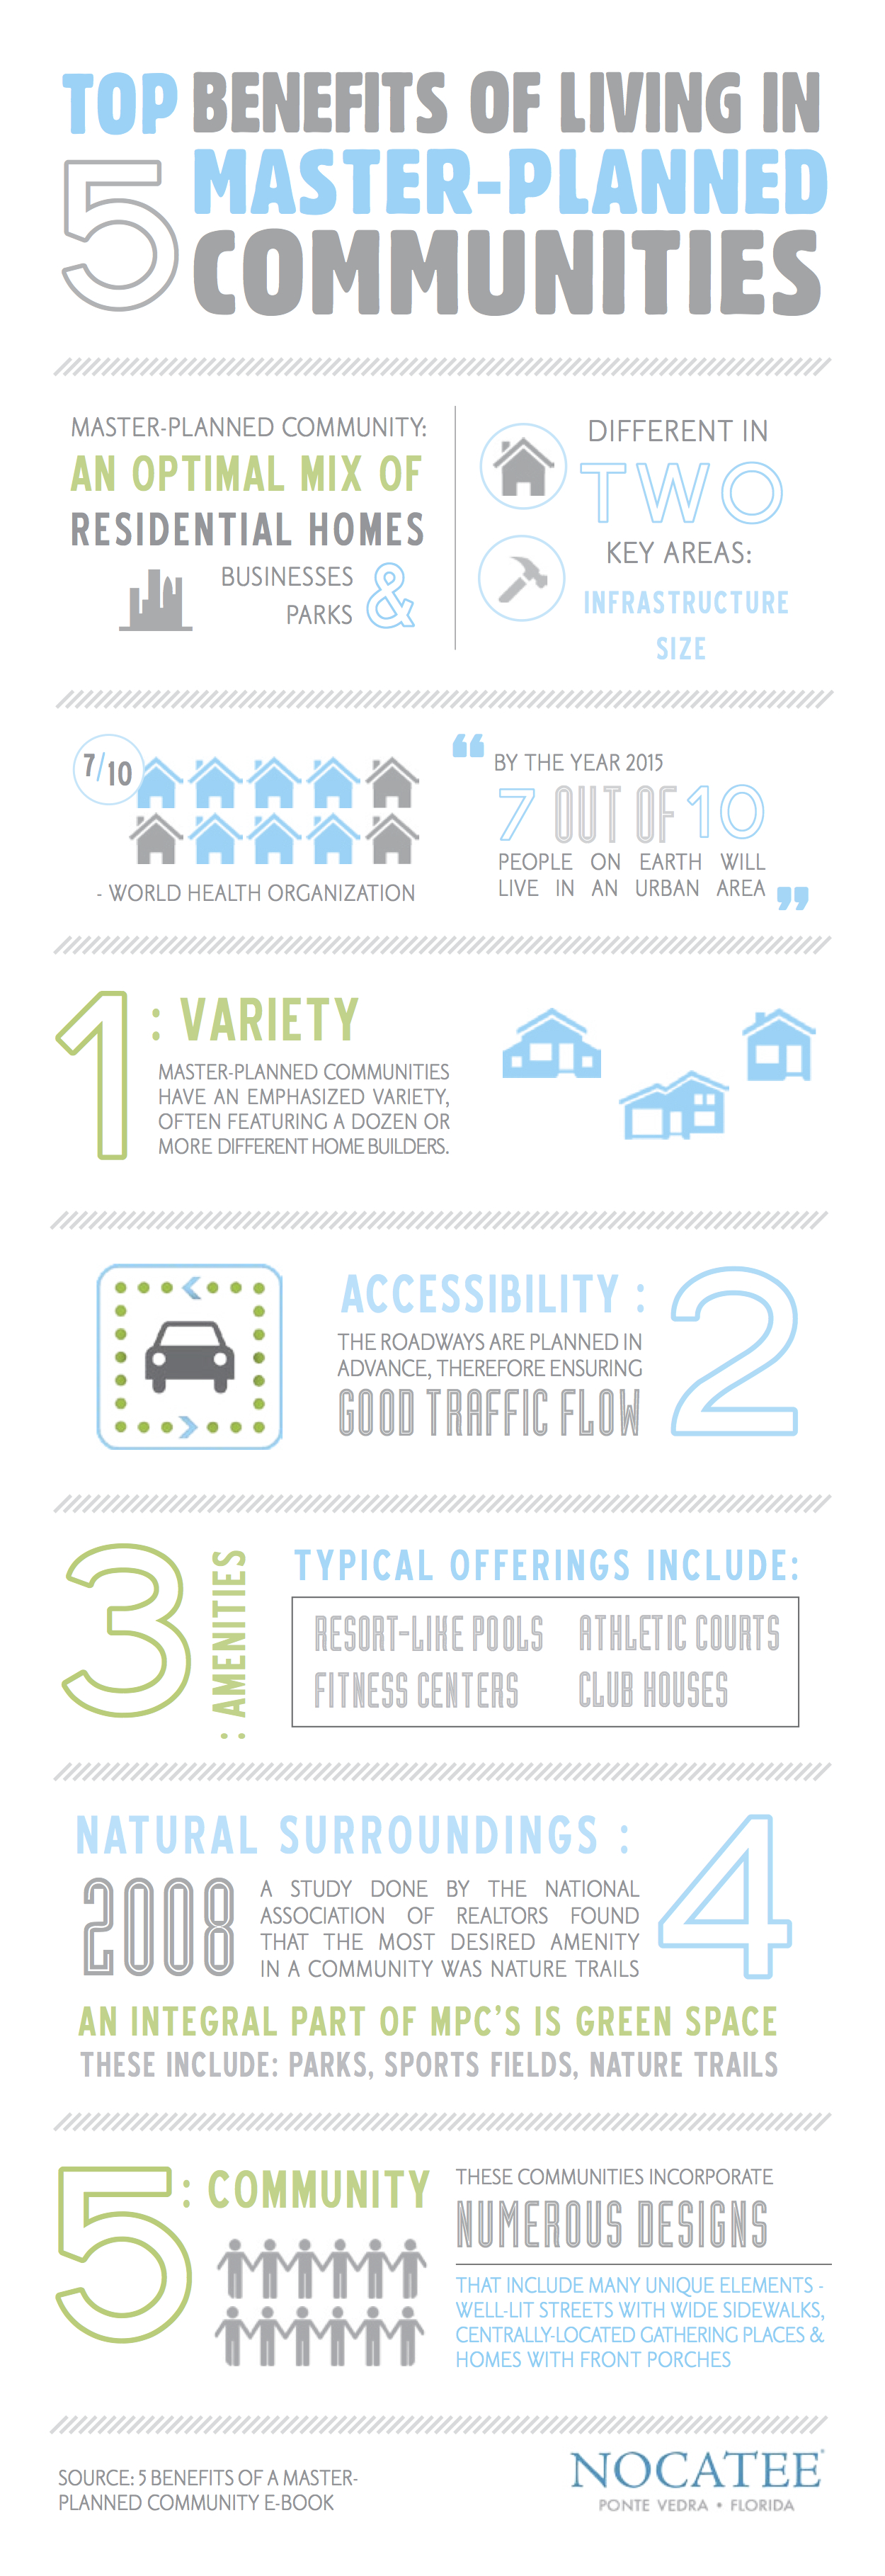 Nocatee's Top 5 Benefits of Living in a MPC